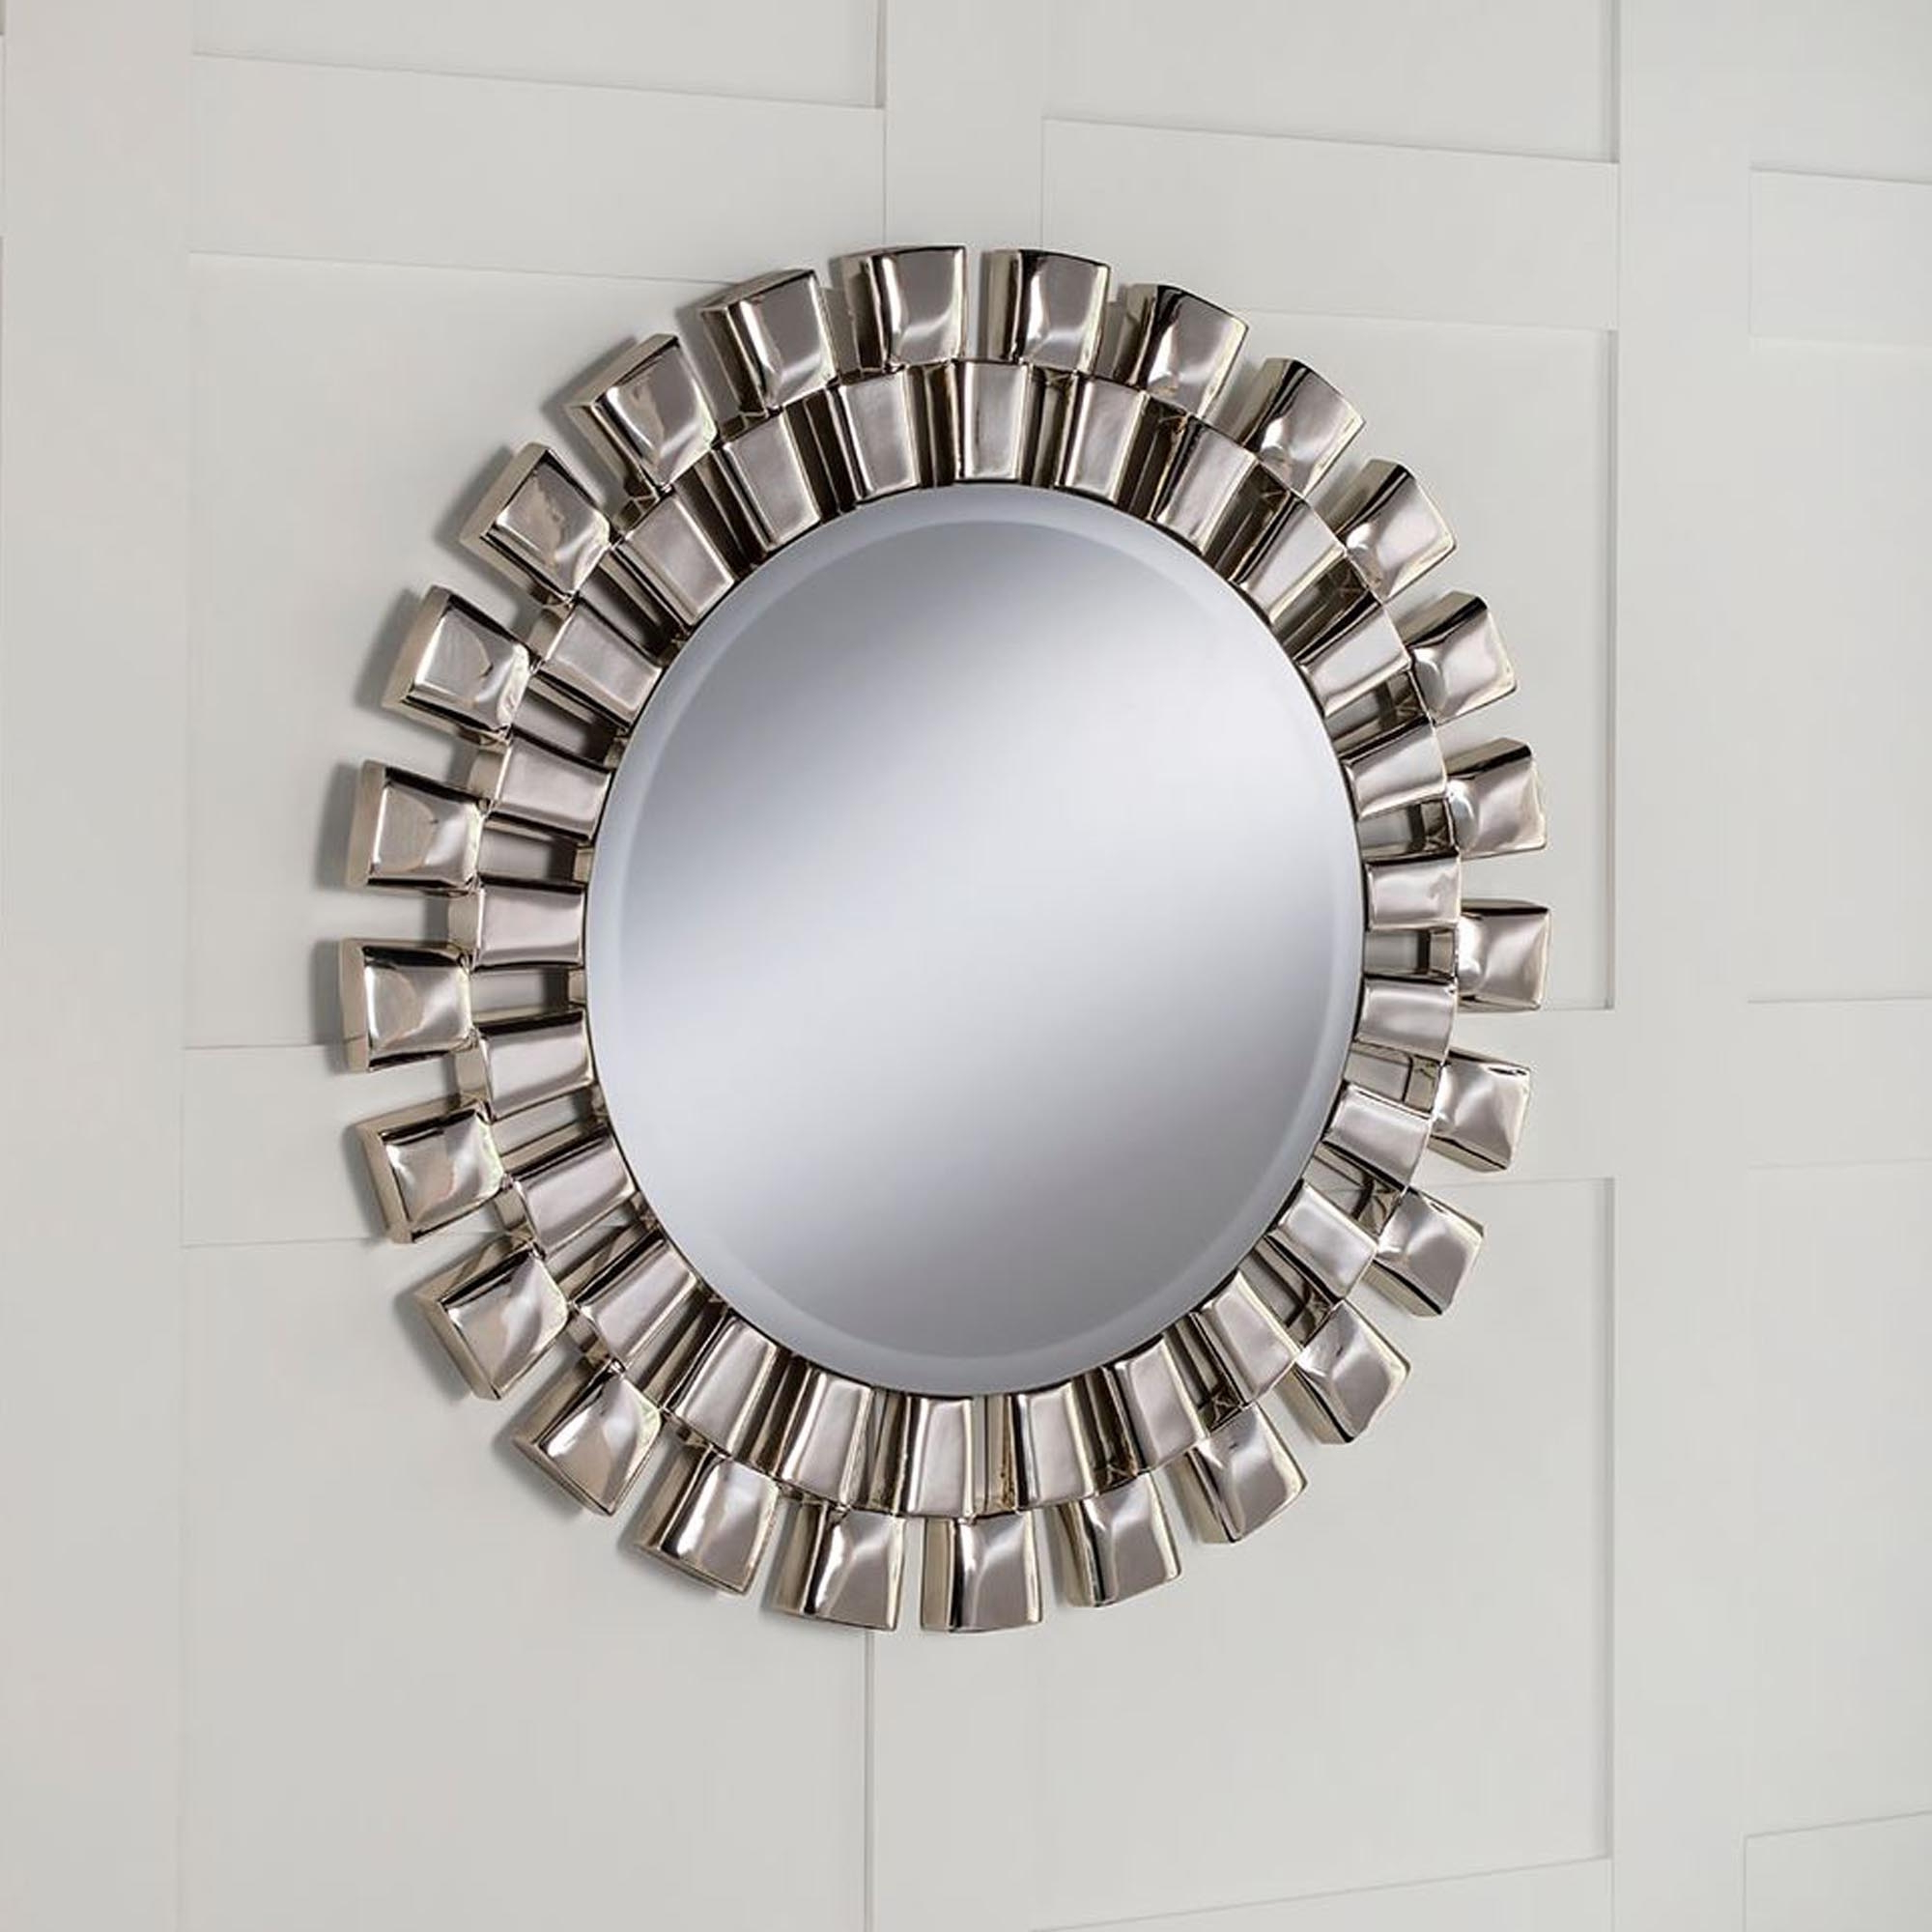 Round Contemporary Chrome Silver Wall Mirror Intended For Widely Used Chrome Wall Mirrors (Gallery 2 of 20)